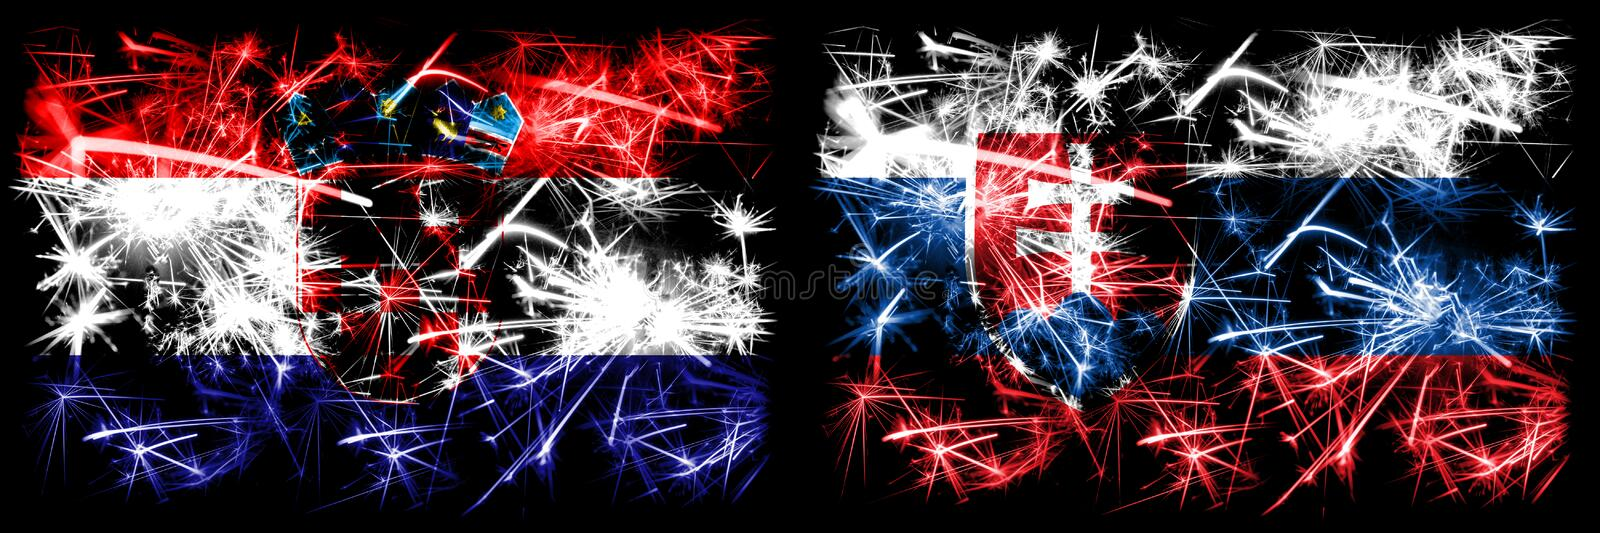 Croatia, Croatian, Slovakia, Slovakian sparkling fireworks concept and idea flags royalty free illustration